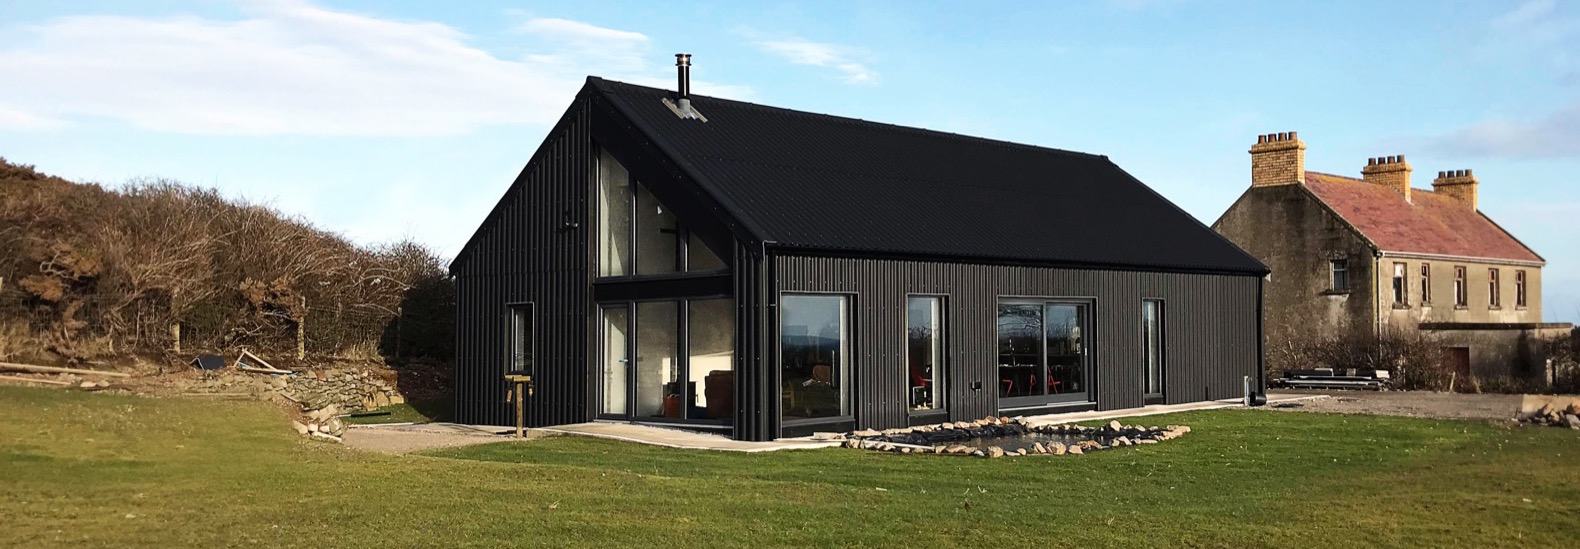 Metal clad eco cottage puts a modern spin on irish rural architecture